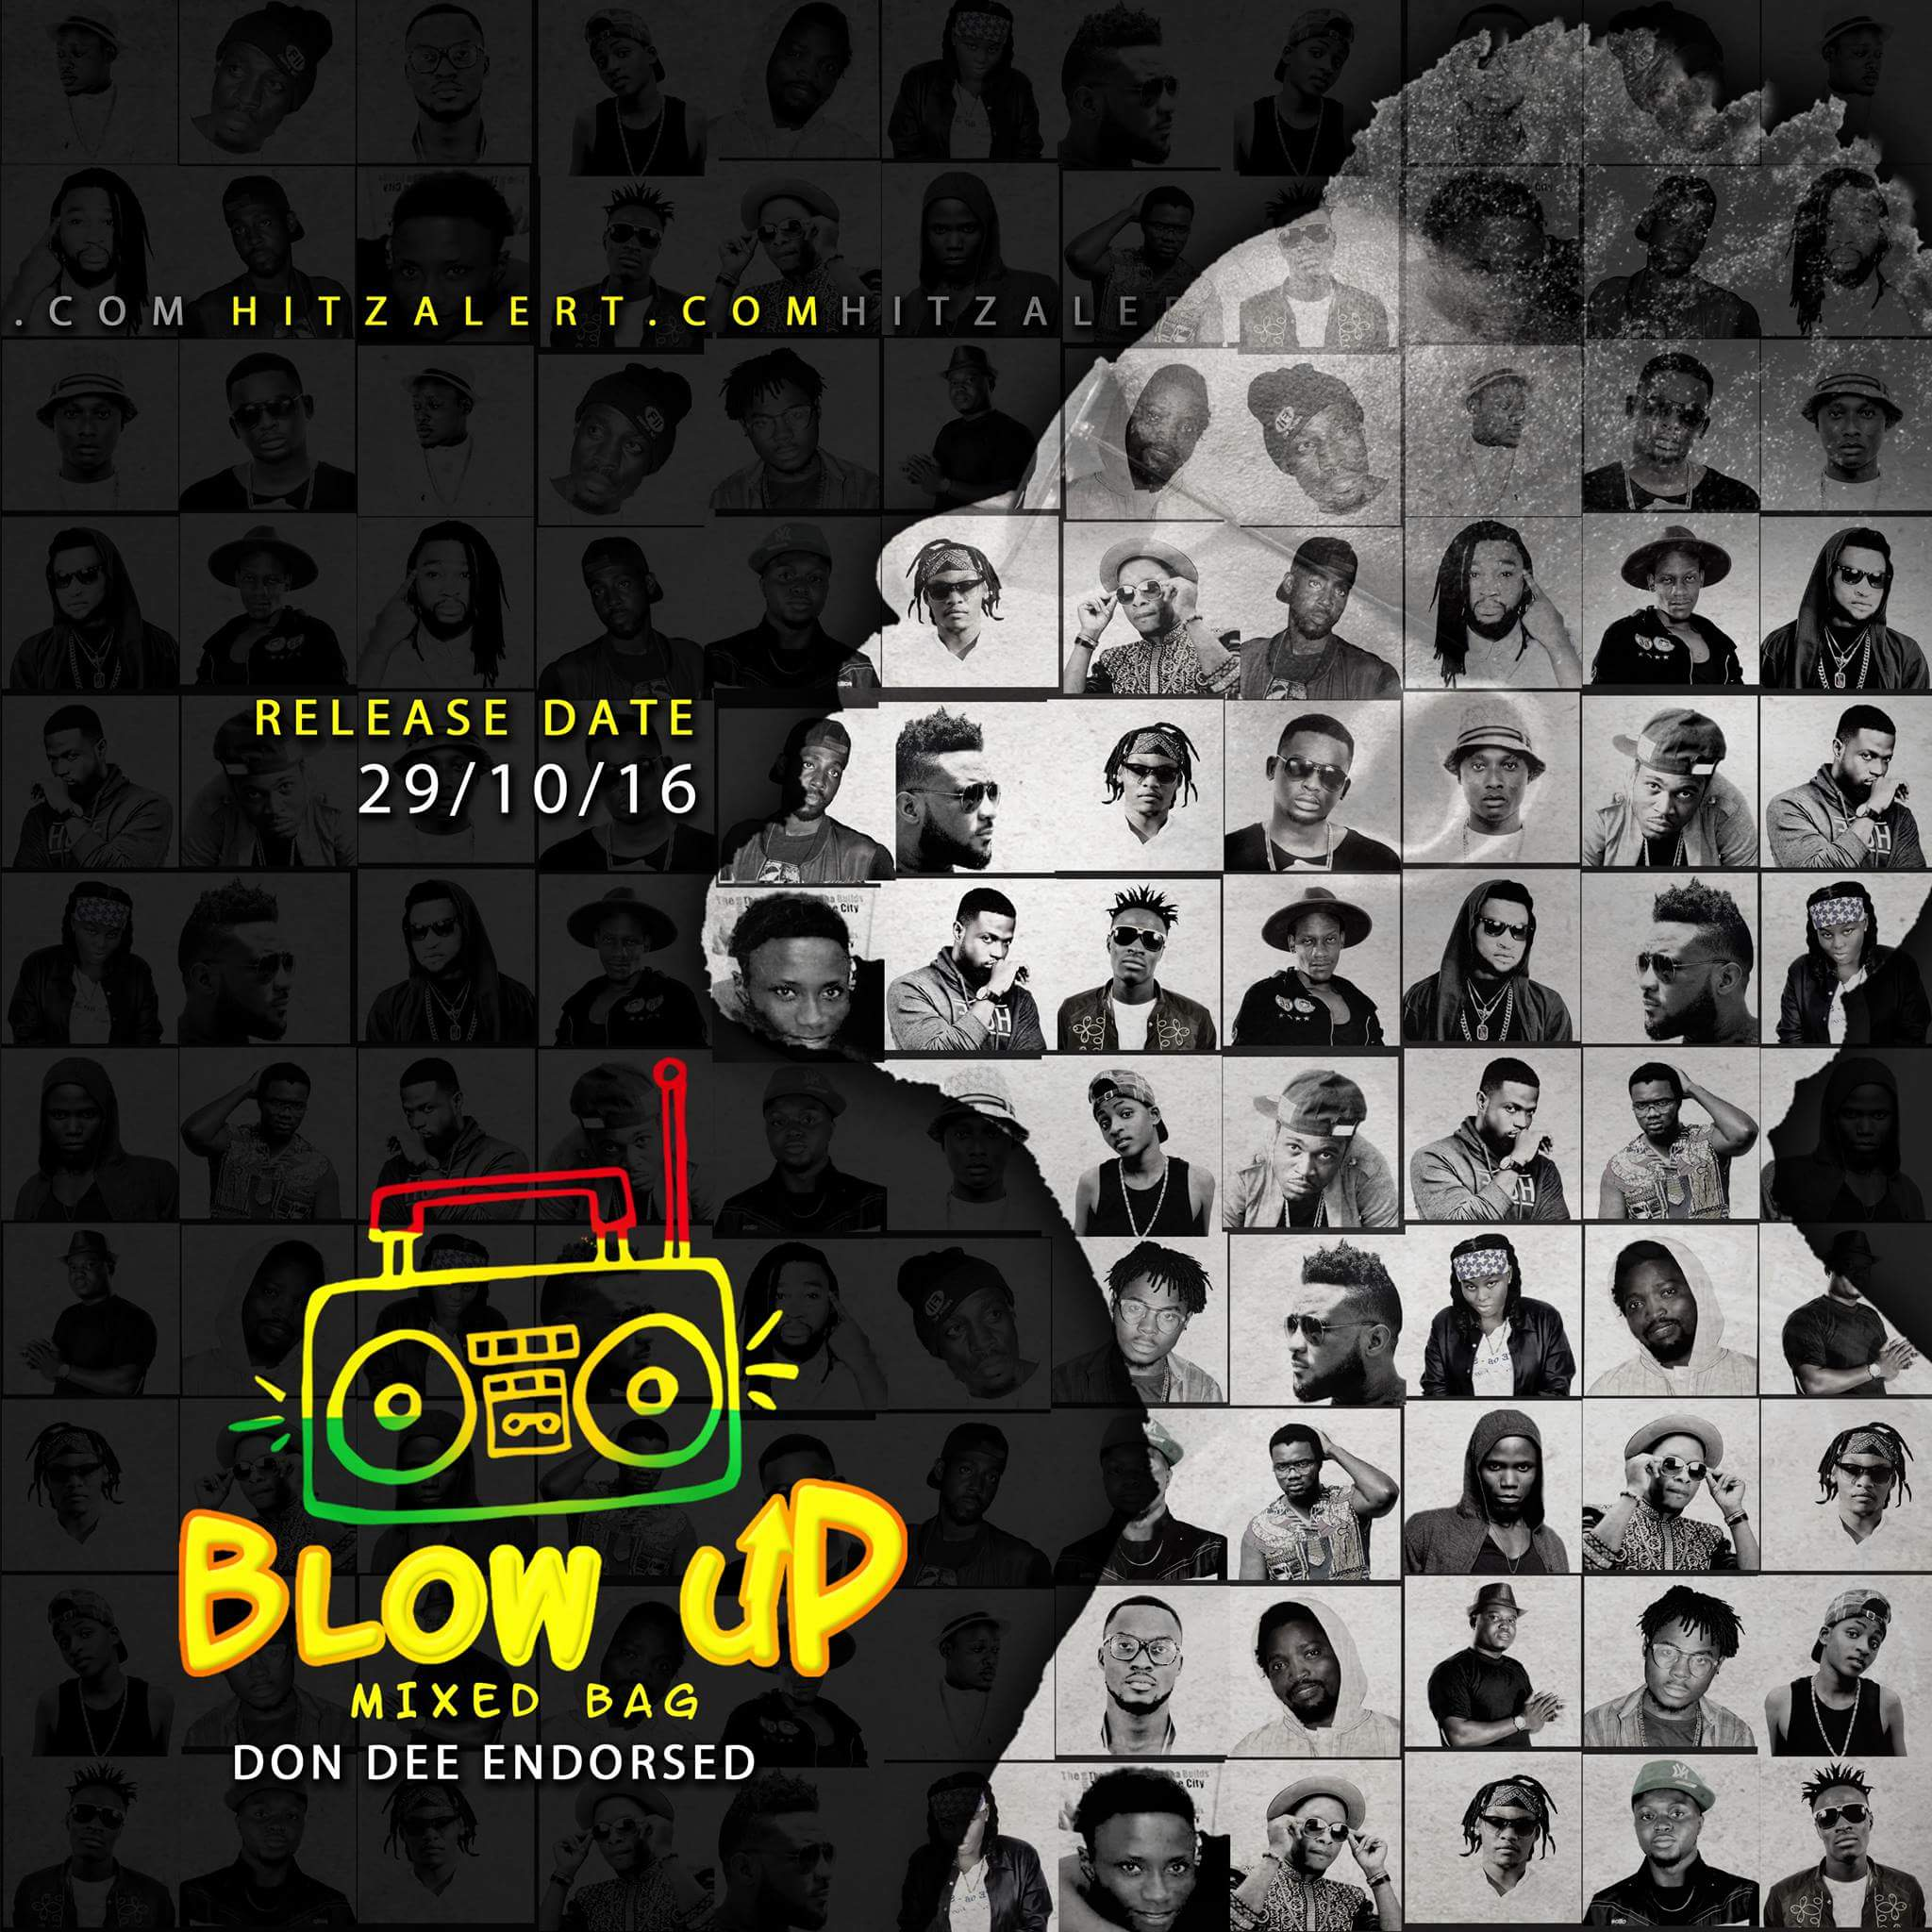 EVENT : BLOW UP MIXED BAG EXPOSURE BASH